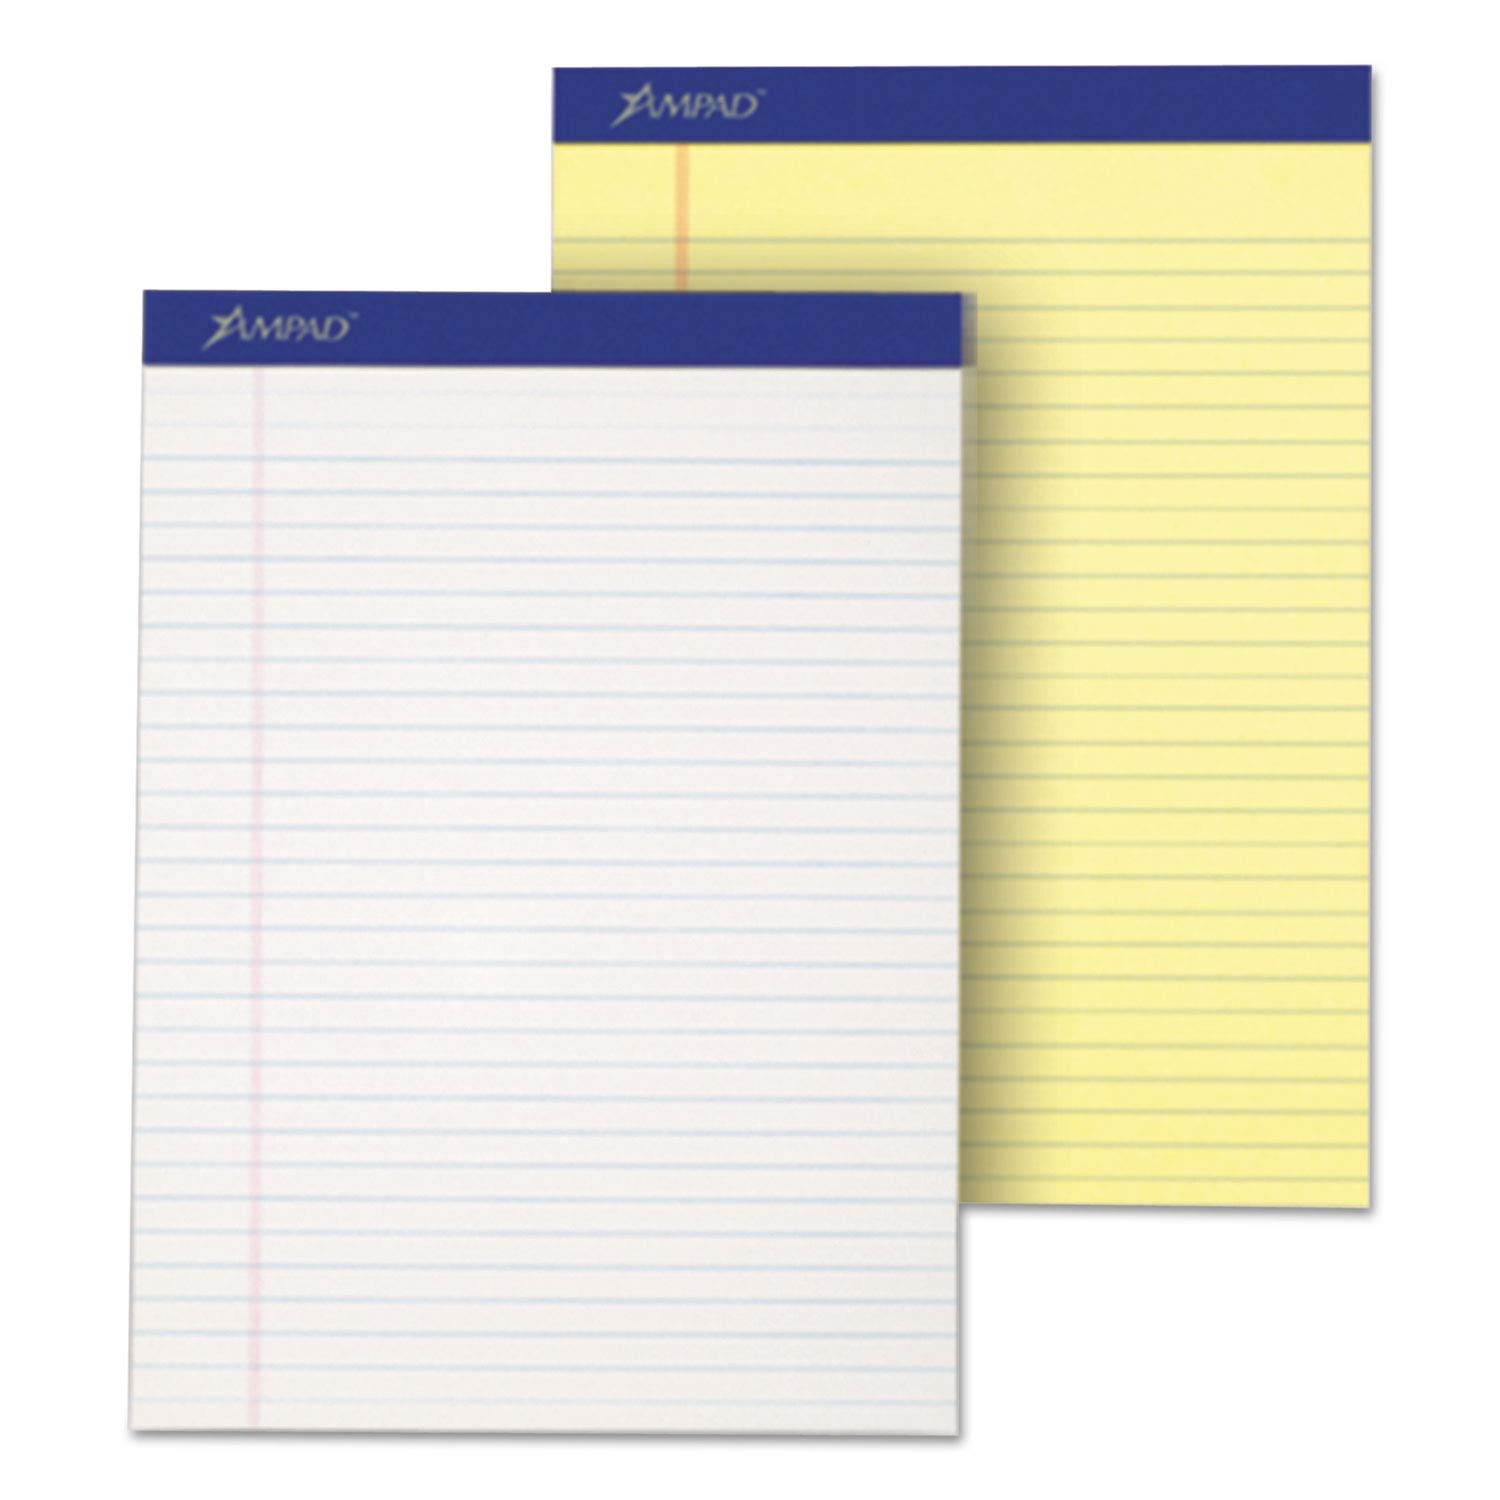 Ampad Perforated Writing Pad, 8 1/2 x 11 3/4, Canary, 50 Sheets, Dozen - 20220